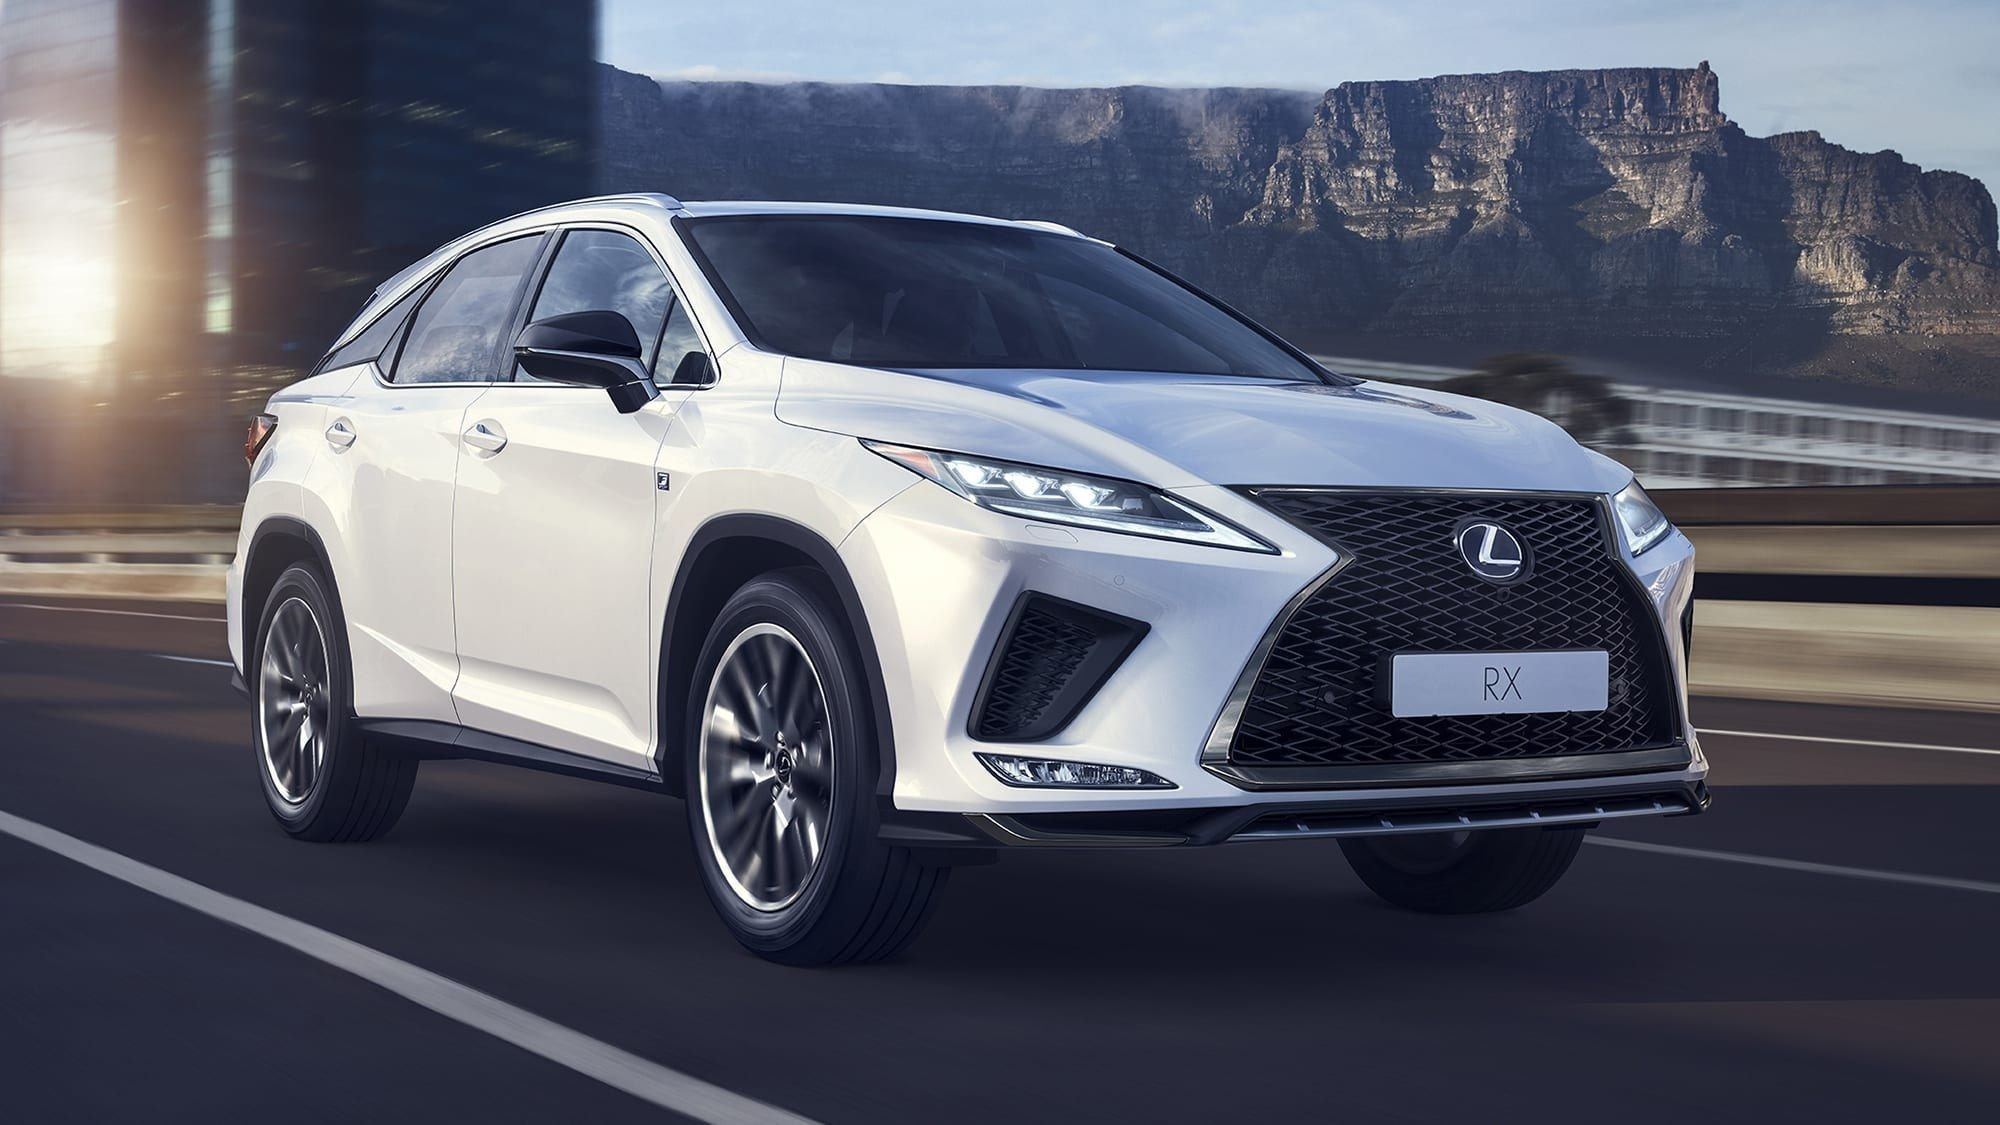 Lexus Rx 2020 Review And Specs Lexus Top Luxury Cars Luxury Cars